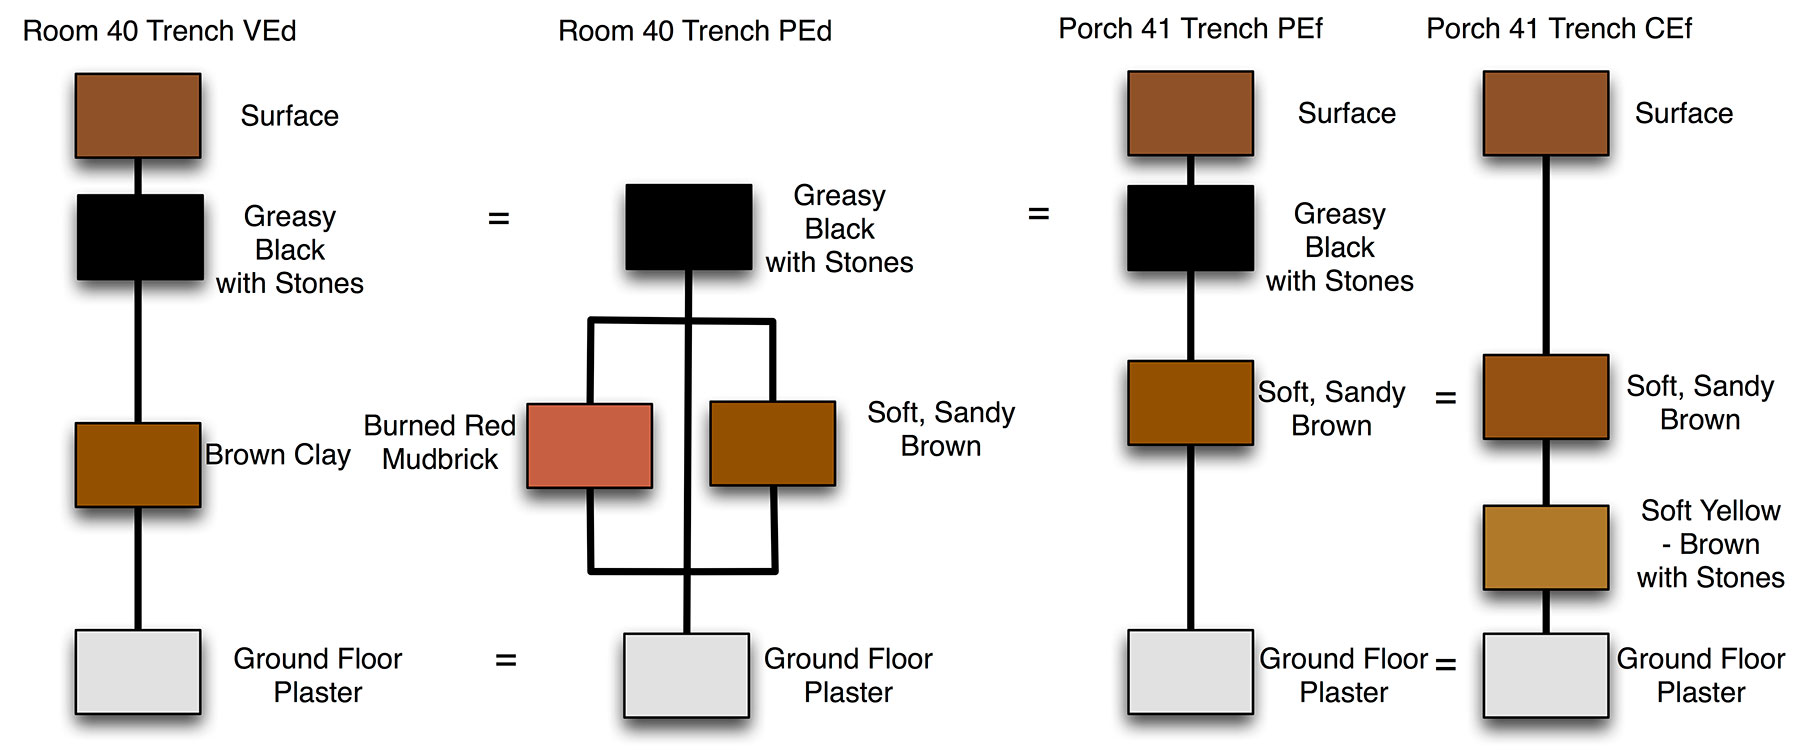 Fig. 5. Room 40 and Porch 41 modified Harris Matrices.